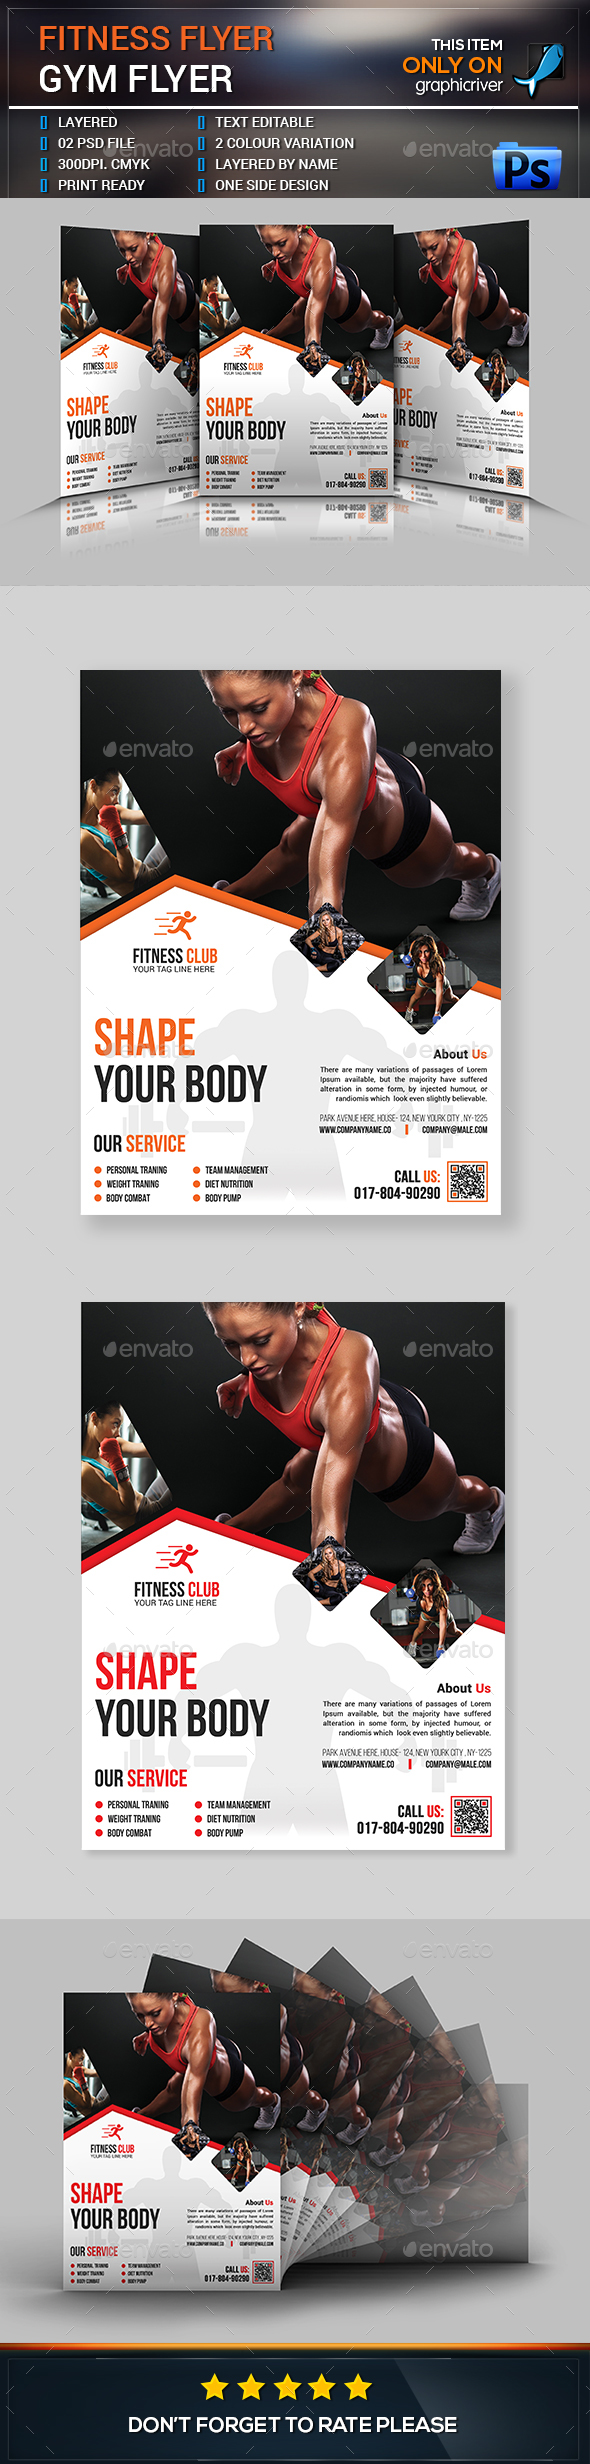 Fitness Flyer / Gym Flyer